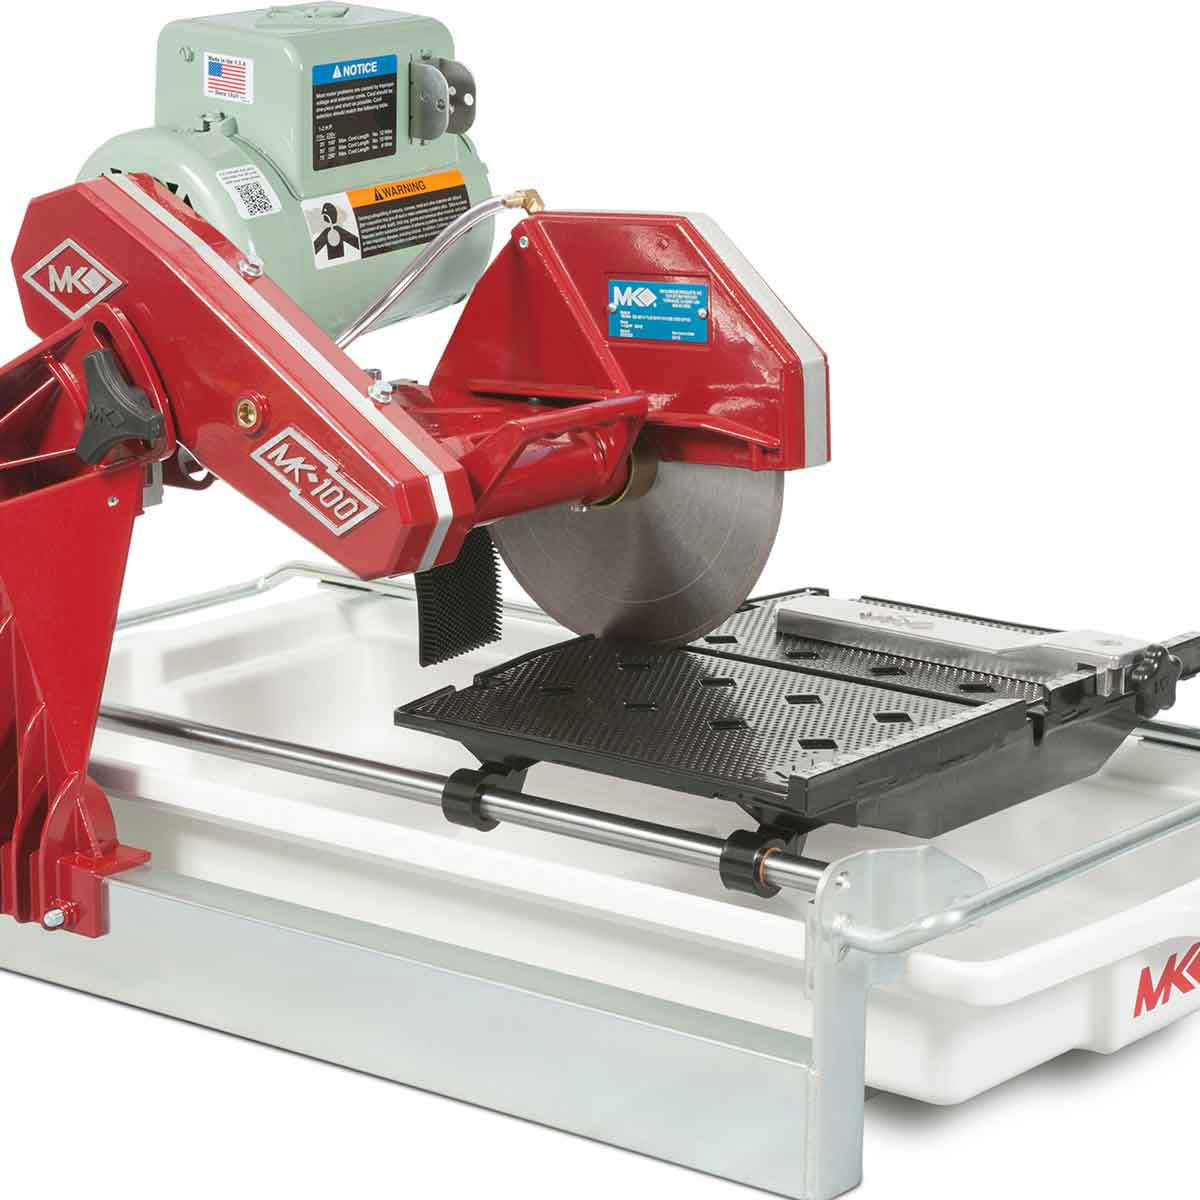 Mk 100 Wet Tile Saw 158189 Contractors Direct